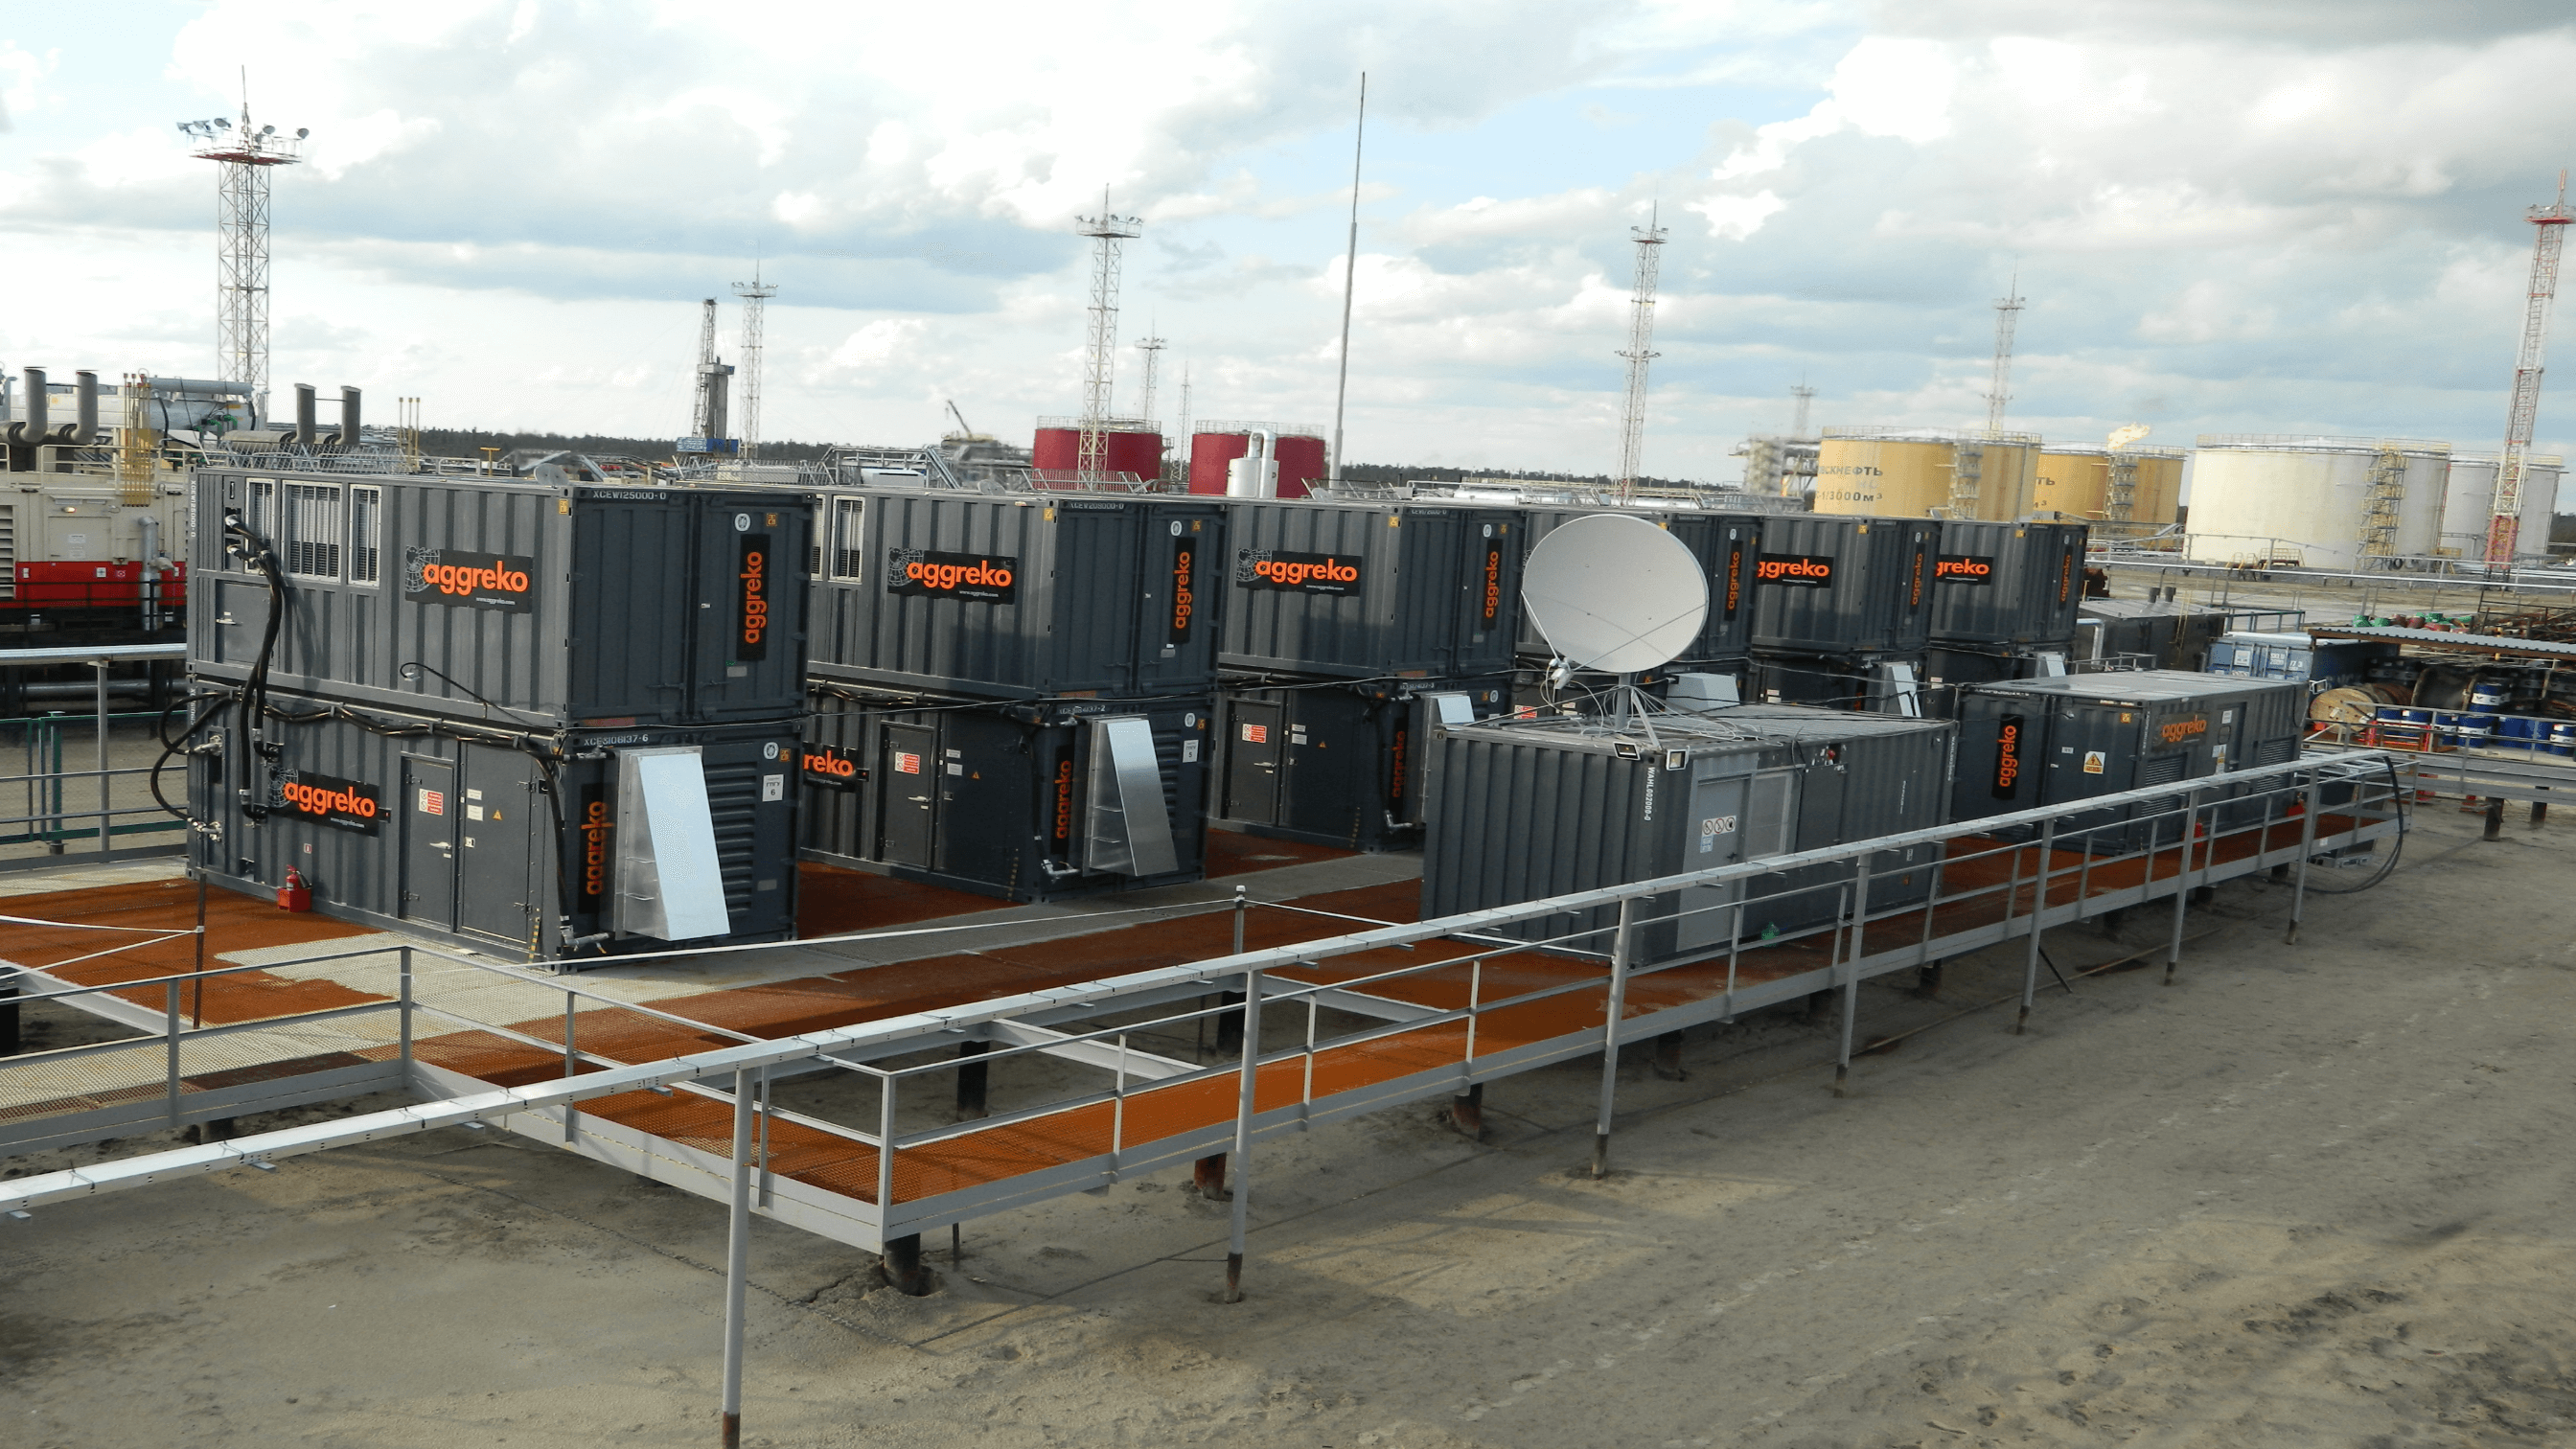 Generators powered by APG